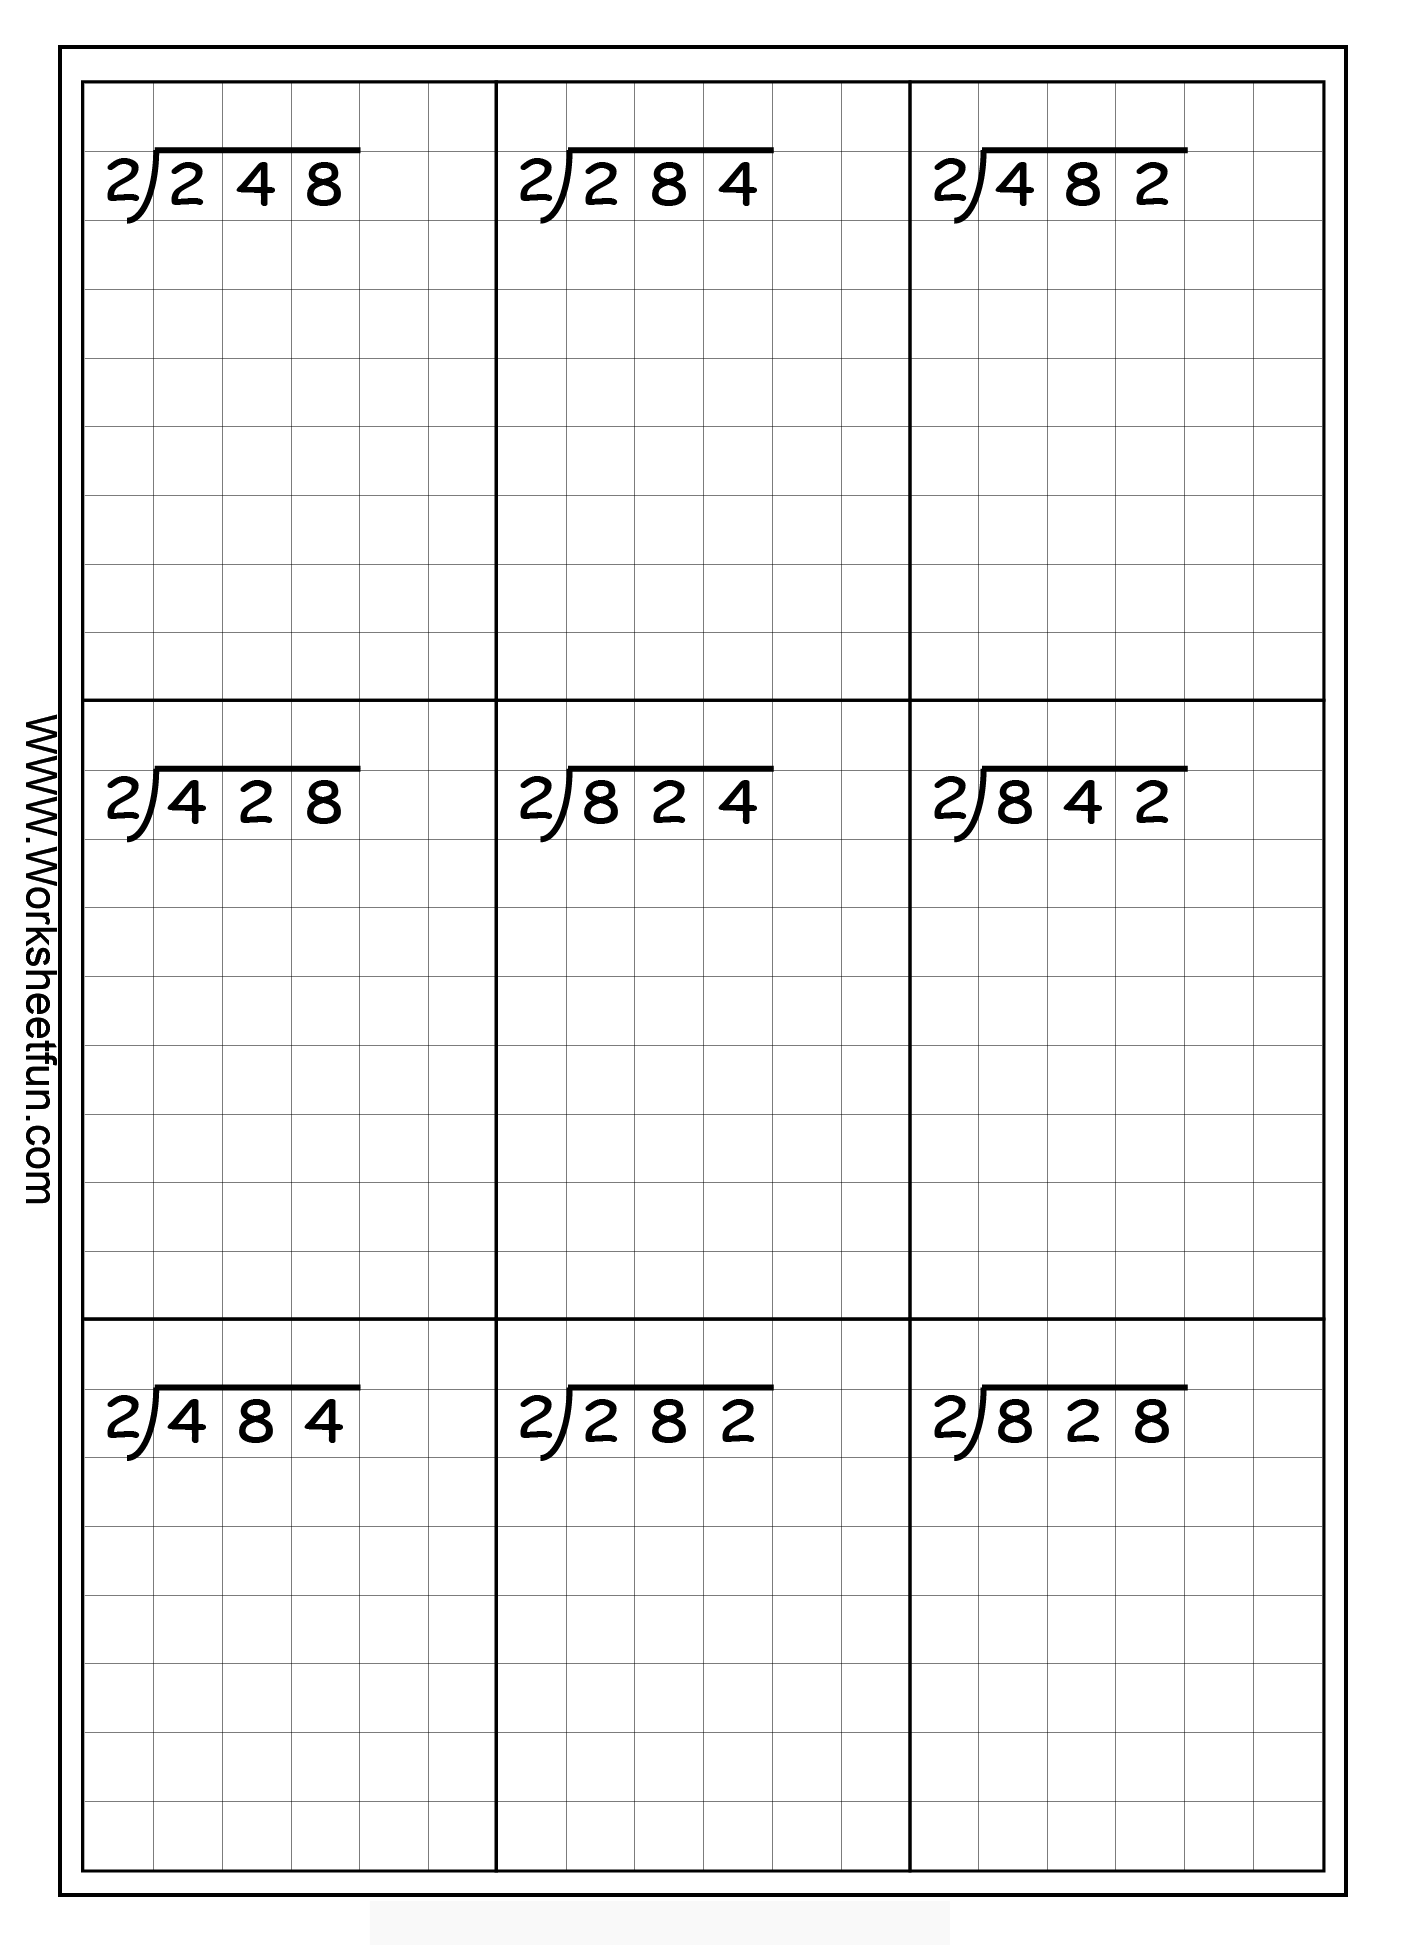 Uncategorized Long Division Worksheet long division 3 digits by 1 digit no remainder 20 worksheets worksheets